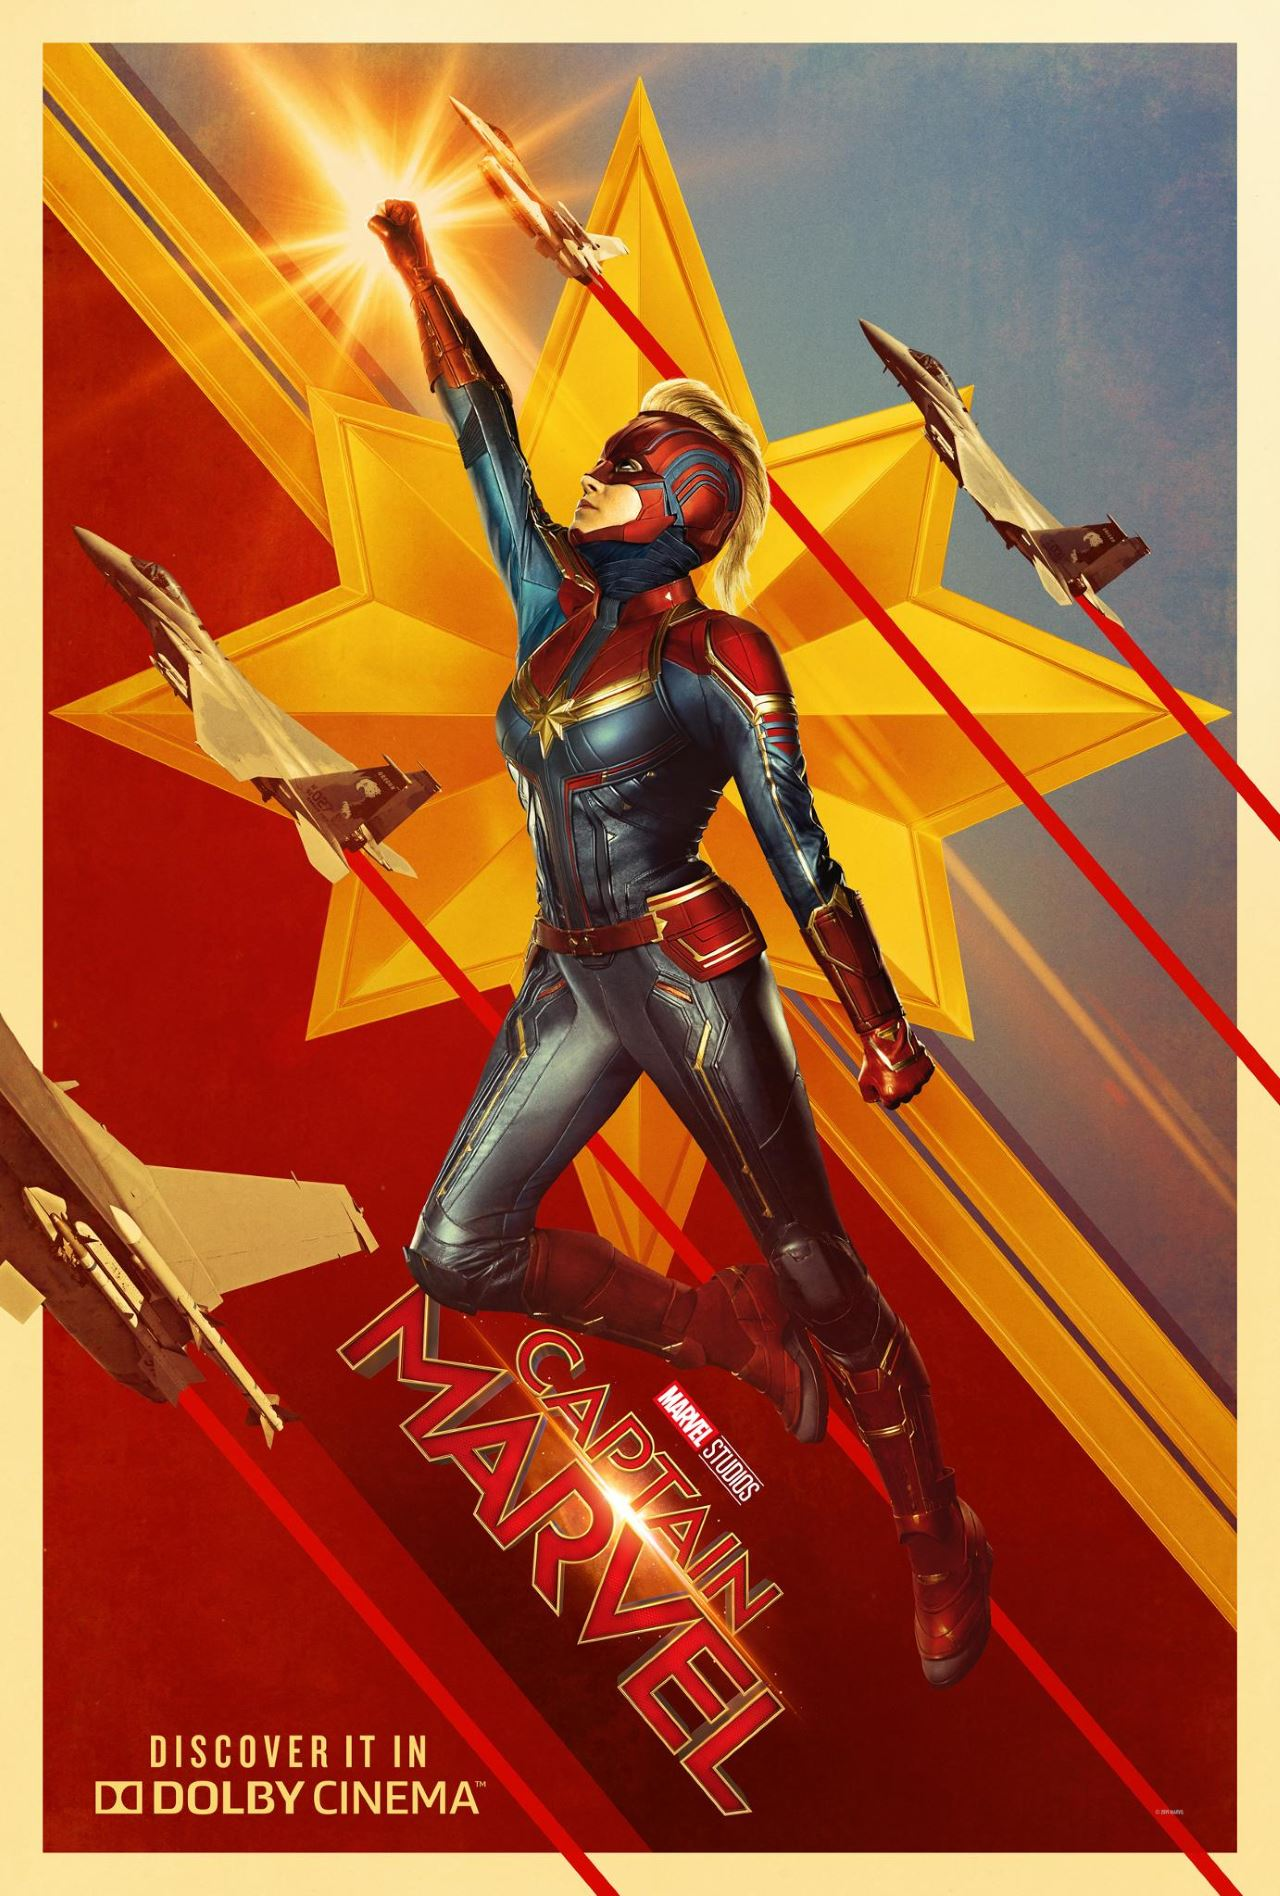 captain marvel poster dolby cinema Captain Marvel